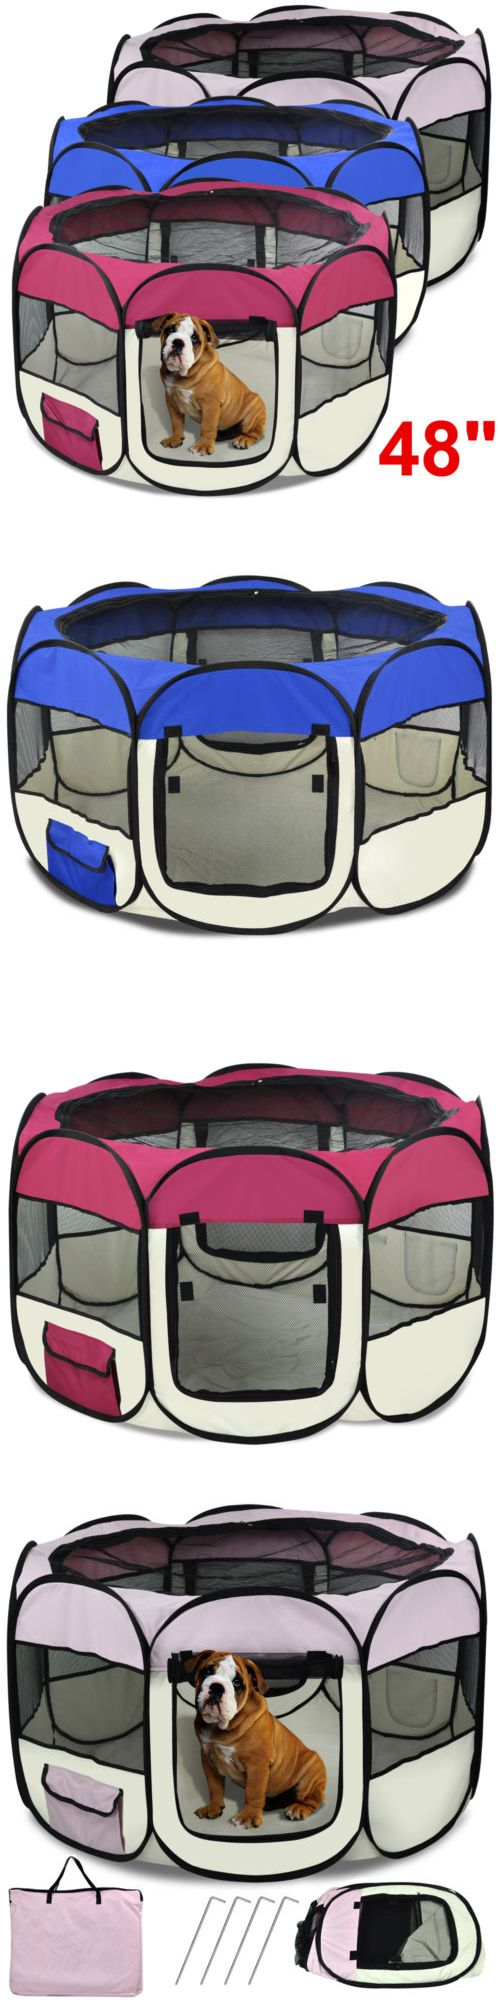 Fences and Exercise Pens 20748: 48 Pet Dog Cat Playpen Tent Portable Exercise Fence Kennel Cage Crate 3 Colors BUY IT NOW ONLY: $31.99